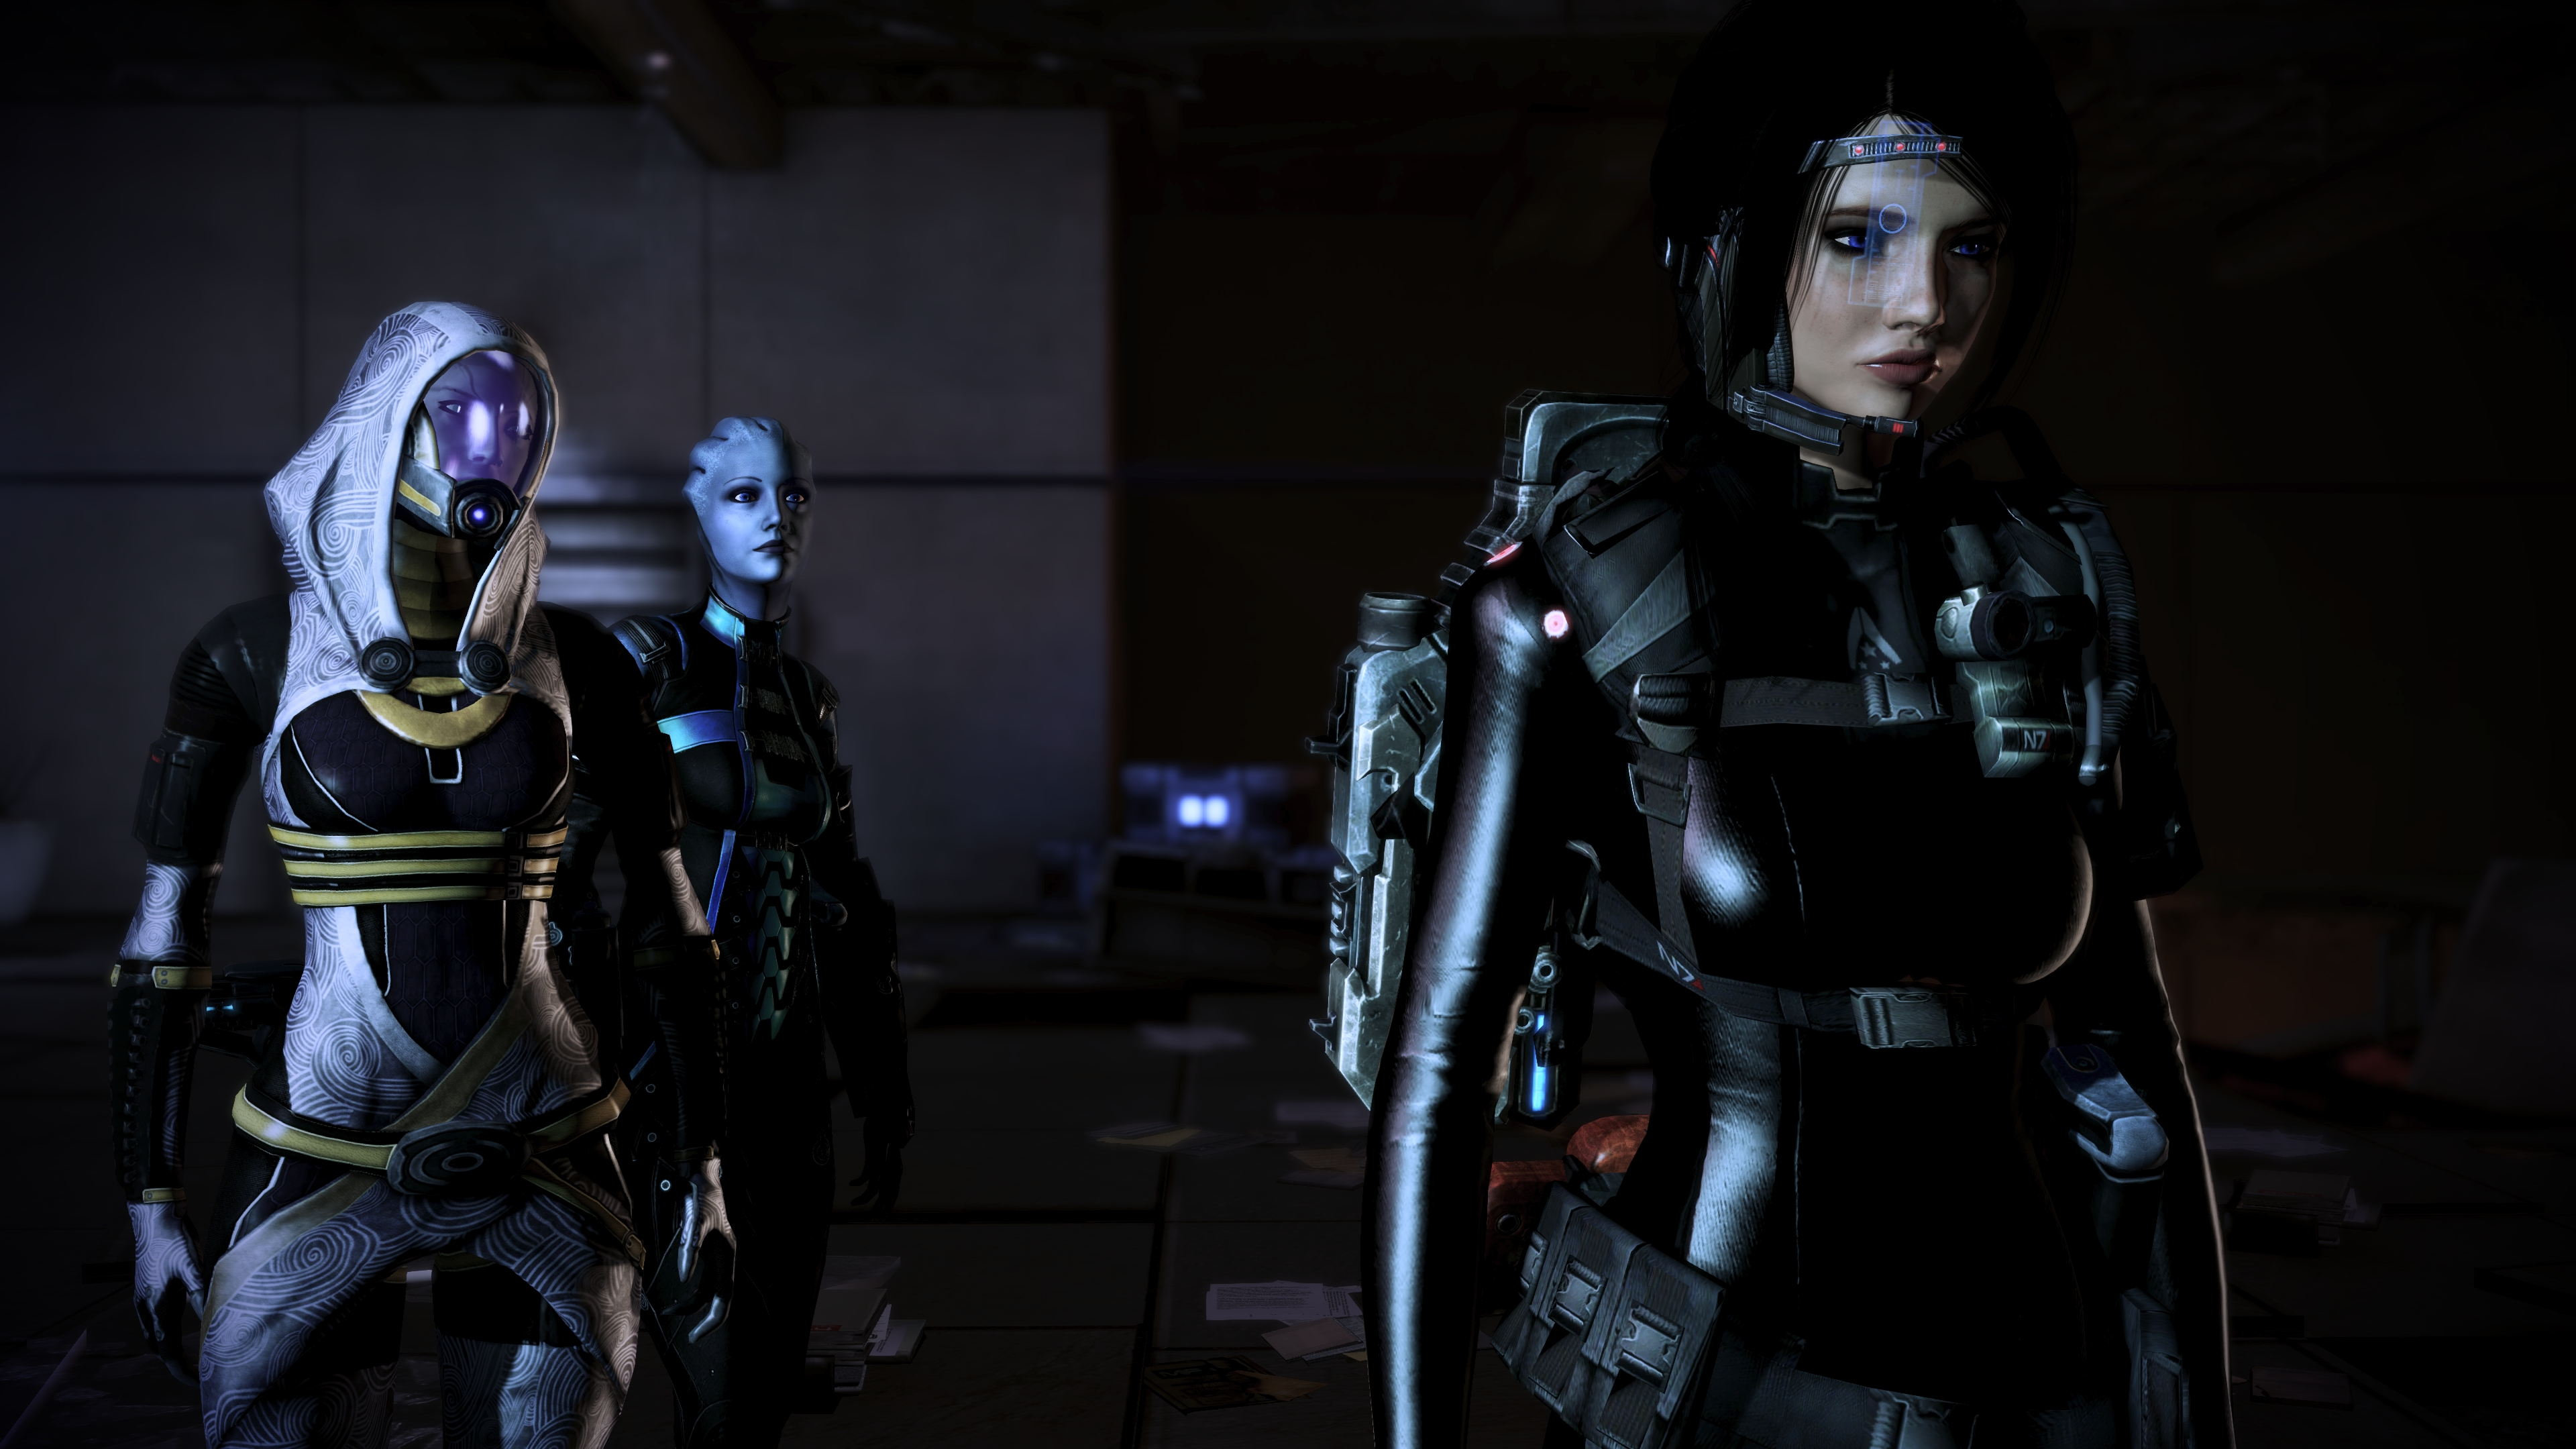 Mass Effect 3 Screenshot 2019.01.25 - 16.46.37.jpg - Mass Effect 3